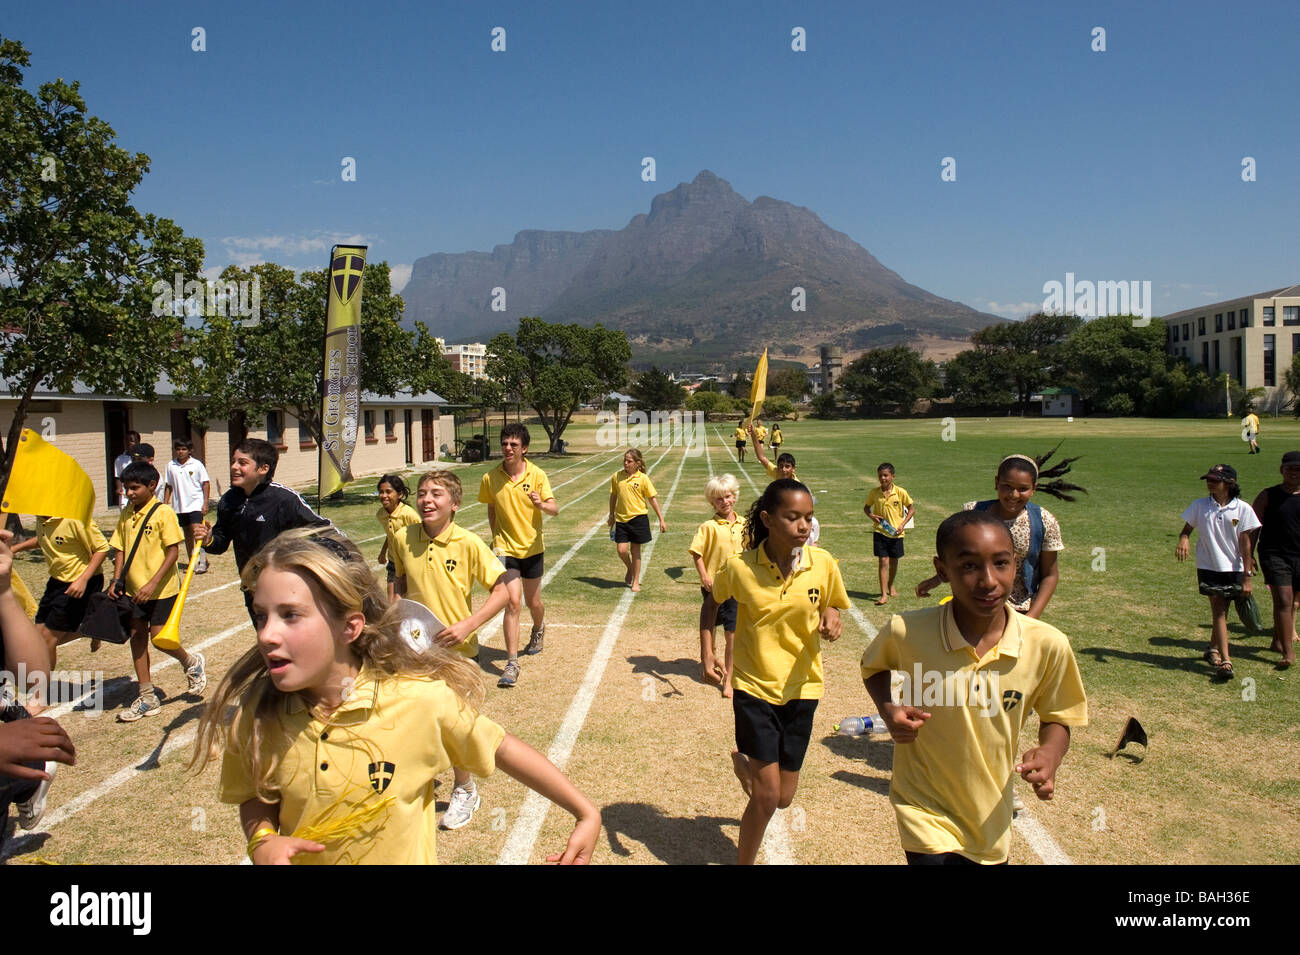 Gala de atletismo en St Georges School Cape Town South Africa Imagen De Stock